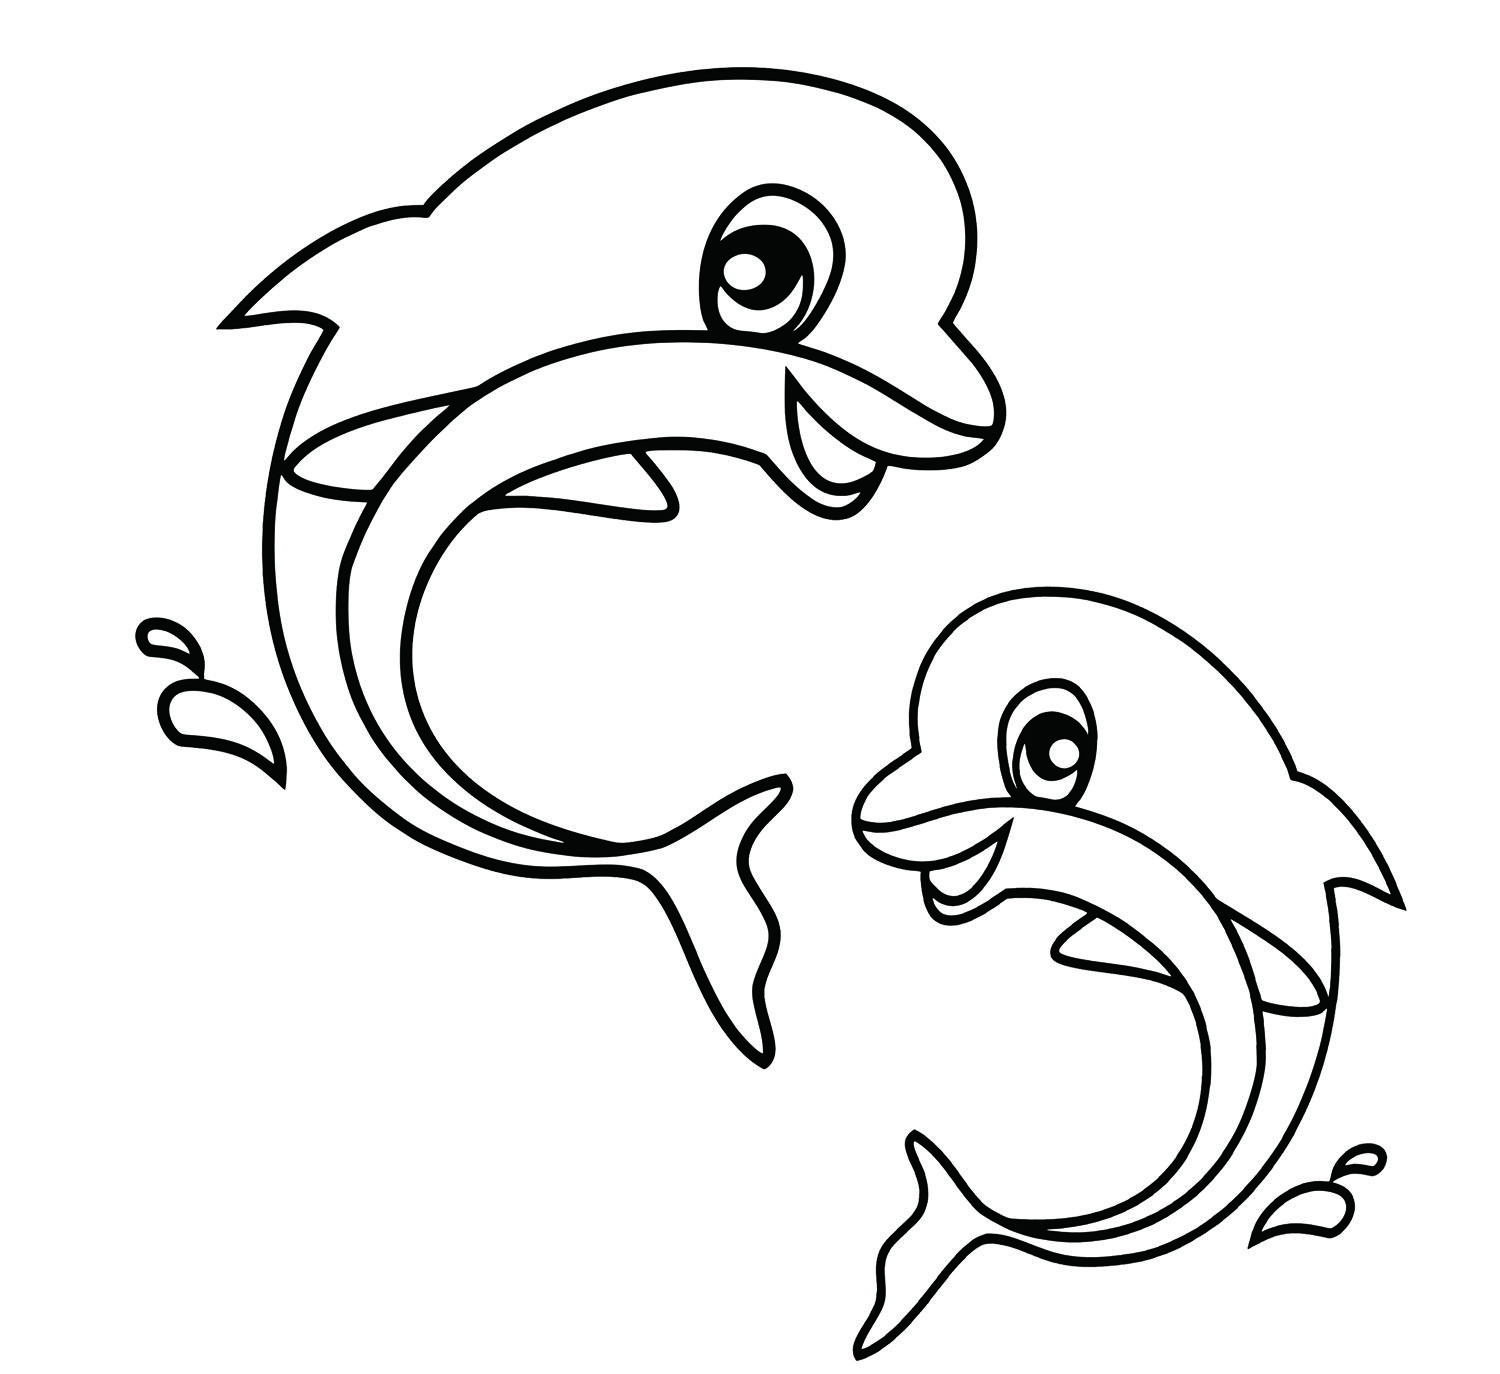 Tap Coloring Pages At Getcolorings